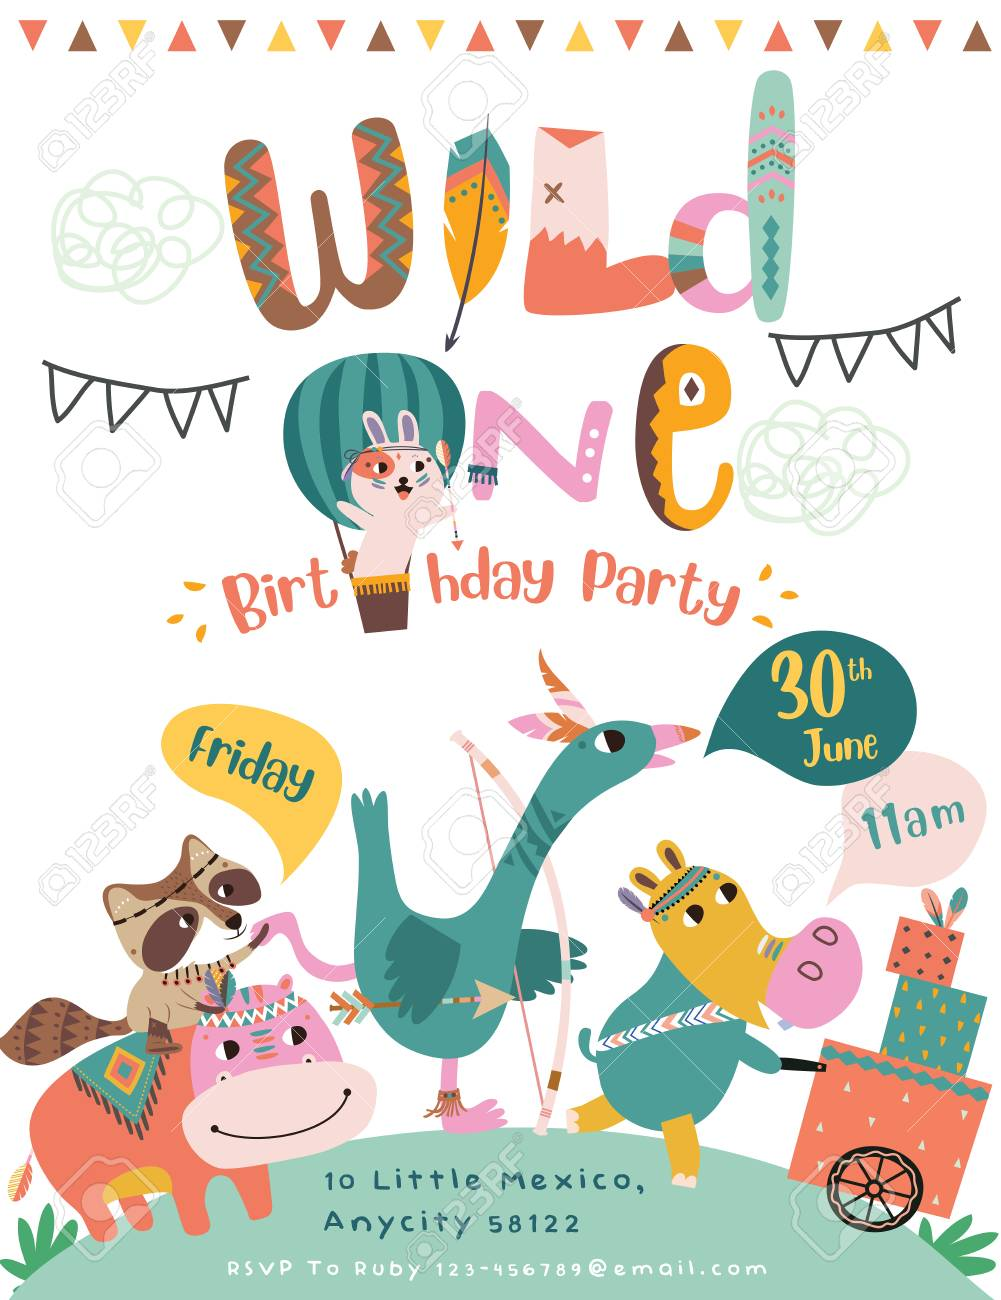 Happy Birthday Party Invitation Card With Cartoon Tribal Animals